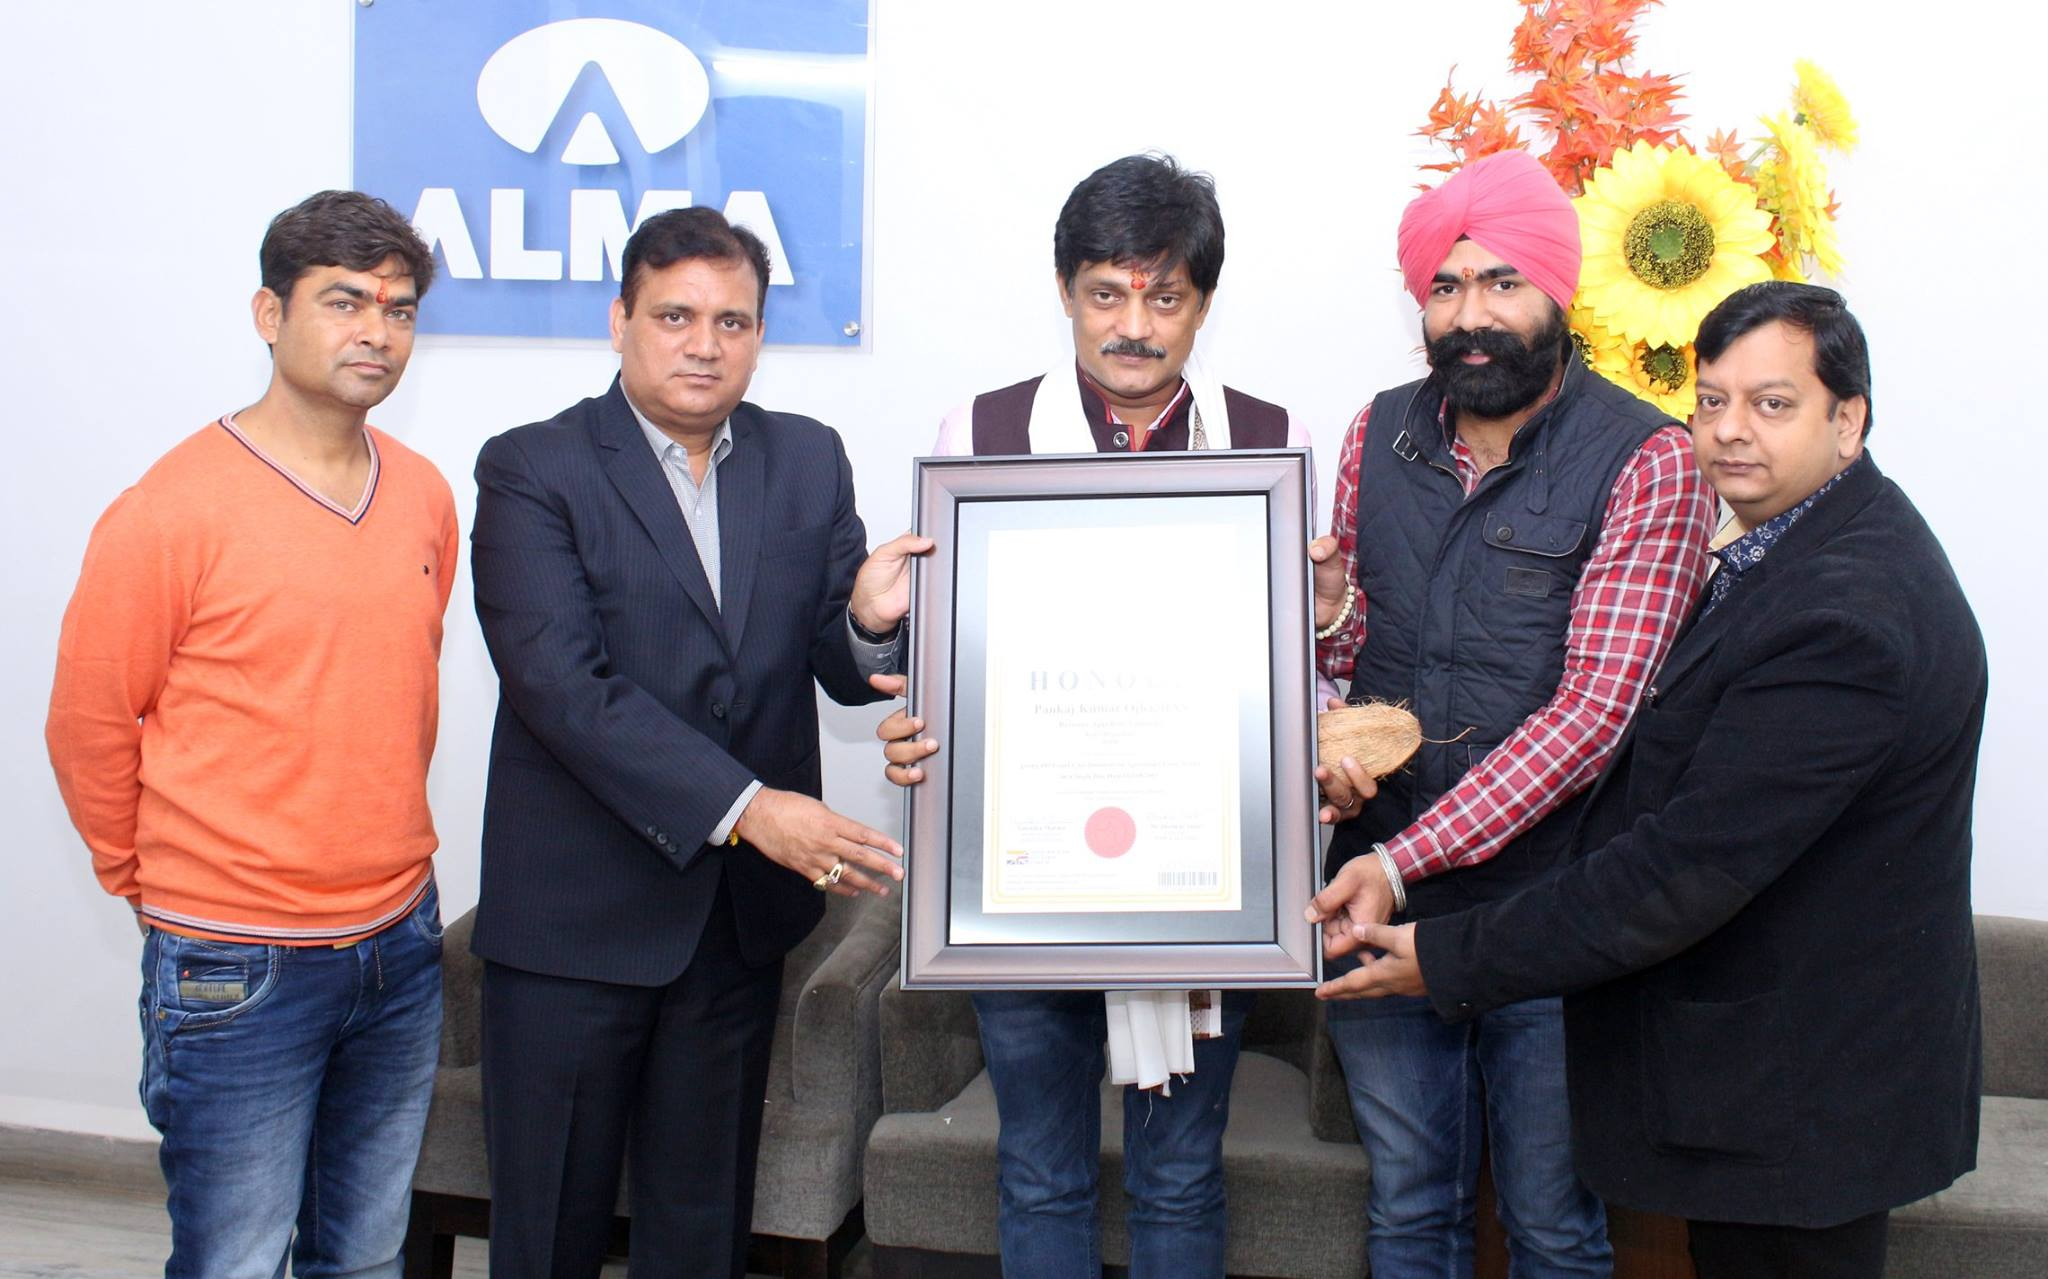 Pankaj Kumar Ojha of Kota (Rajasthan) gets honoured by World Book of Records